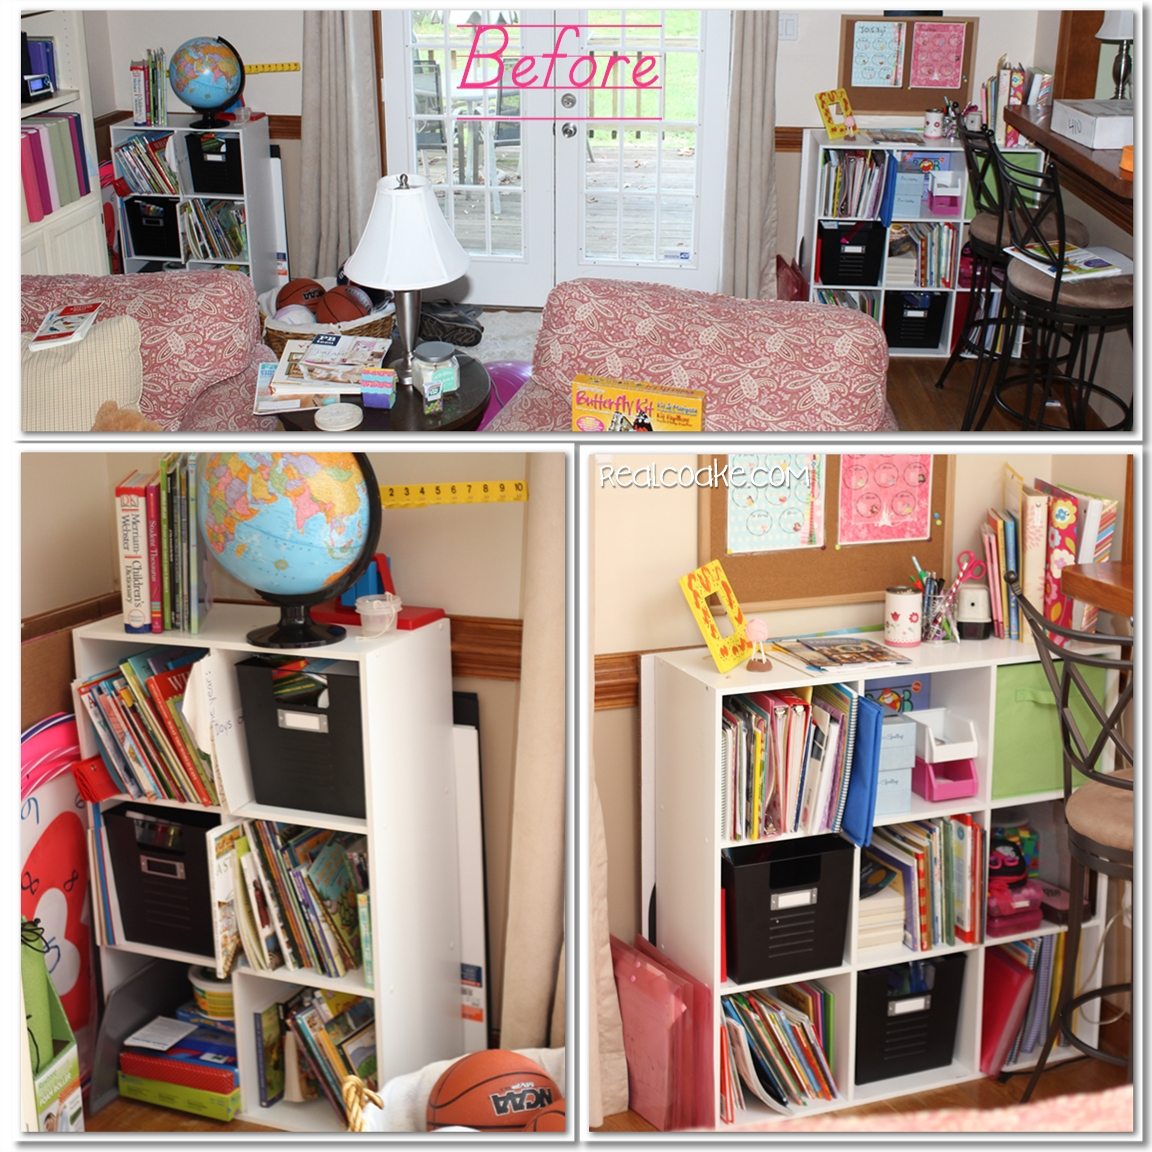 Living Room Organization homeschool organization ~our newly organized school 'room'